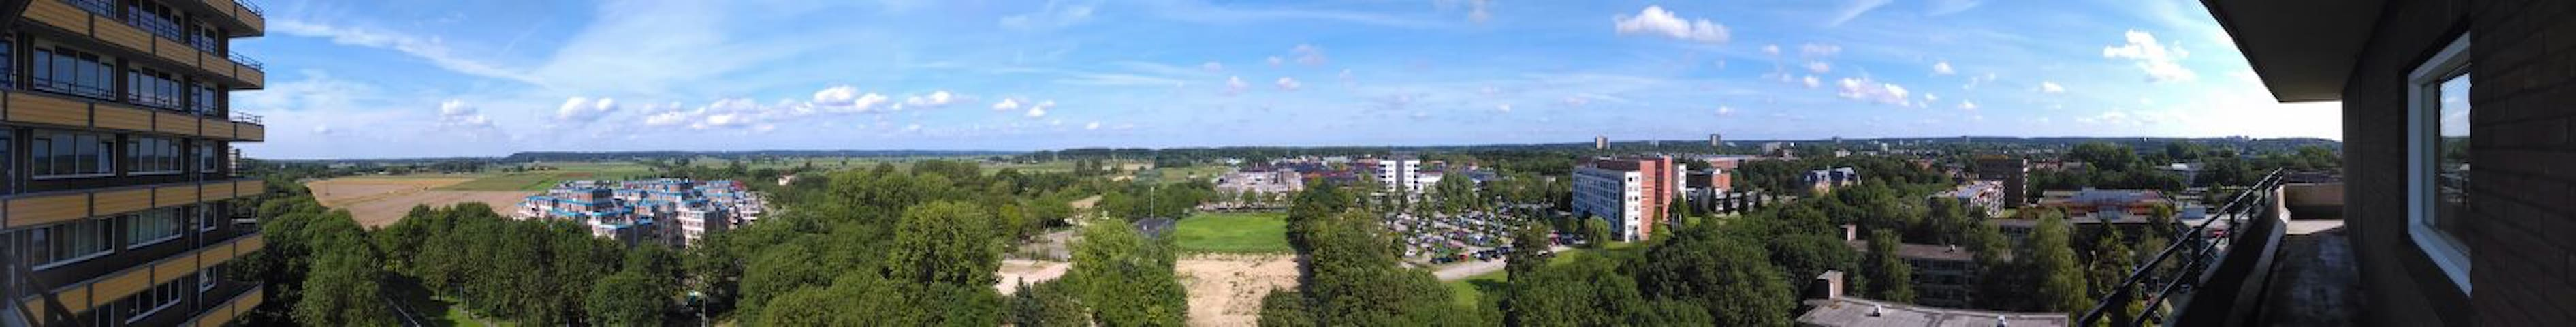 Spacious appartment with beautiful view - Wageningen - Appartement